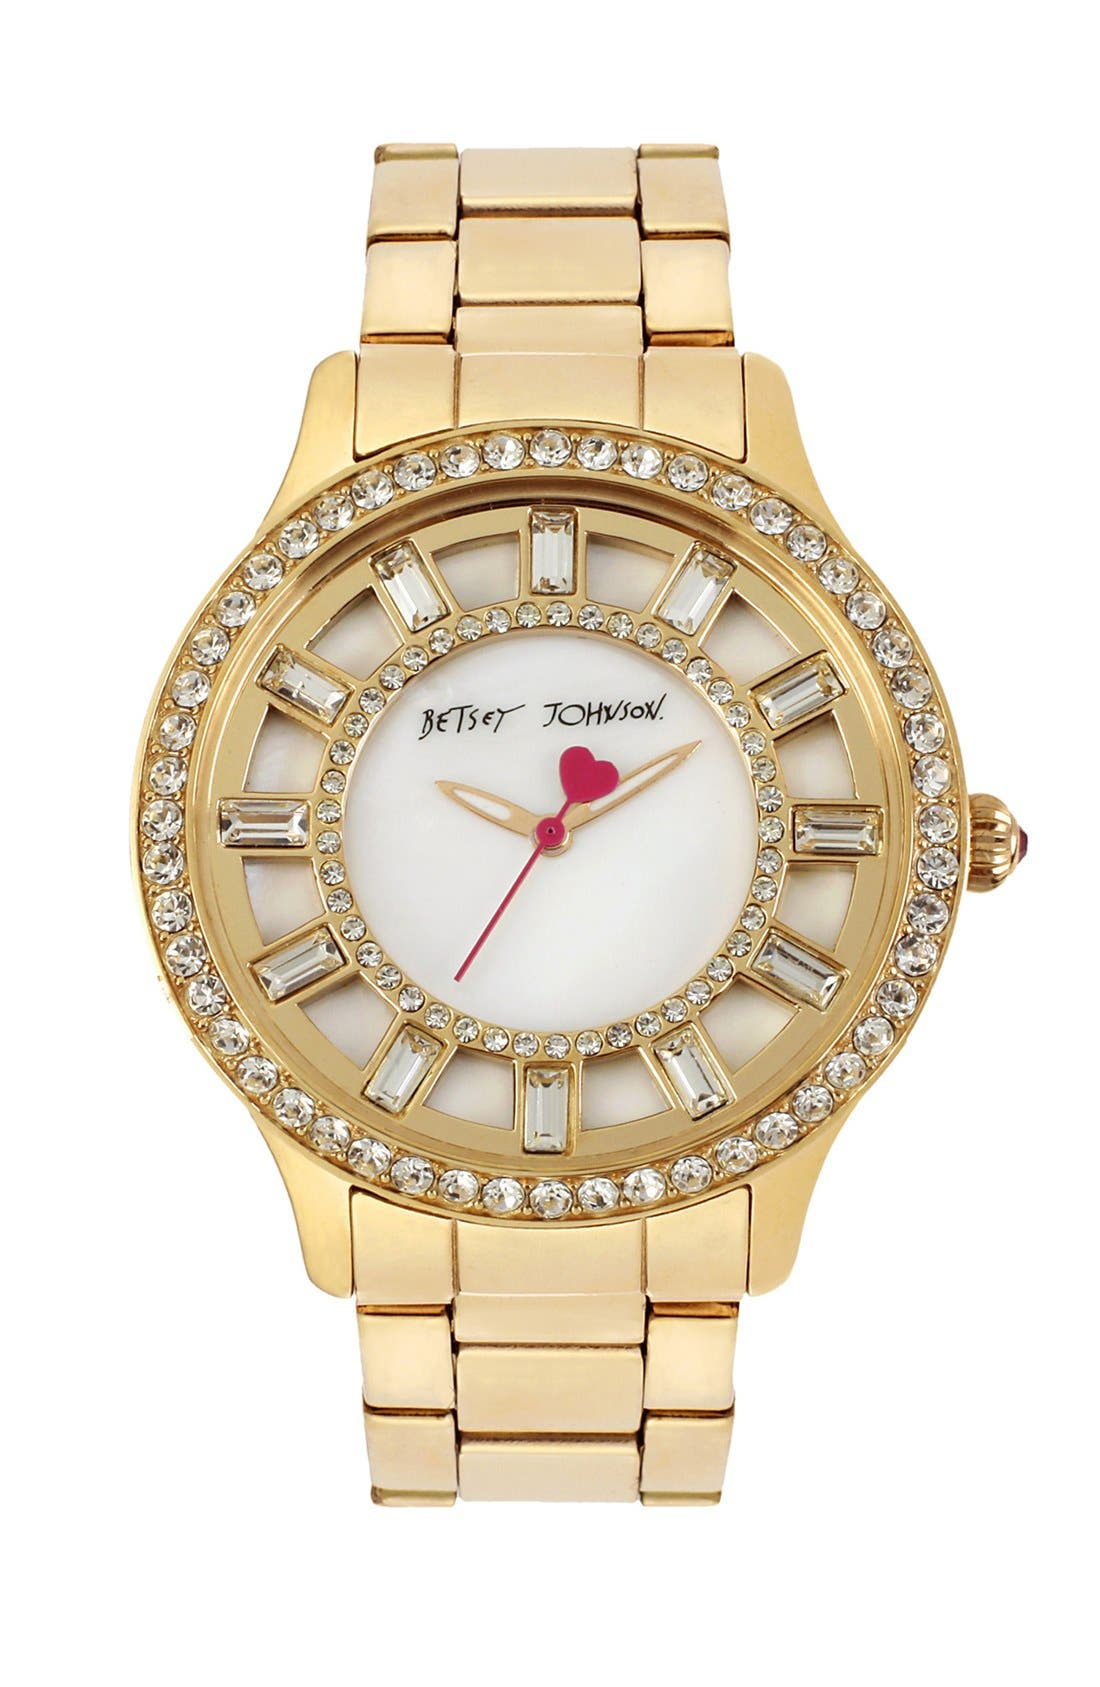 Main Image - Betsey Johnson Crystal Accent Bracelet Watch, 40mm